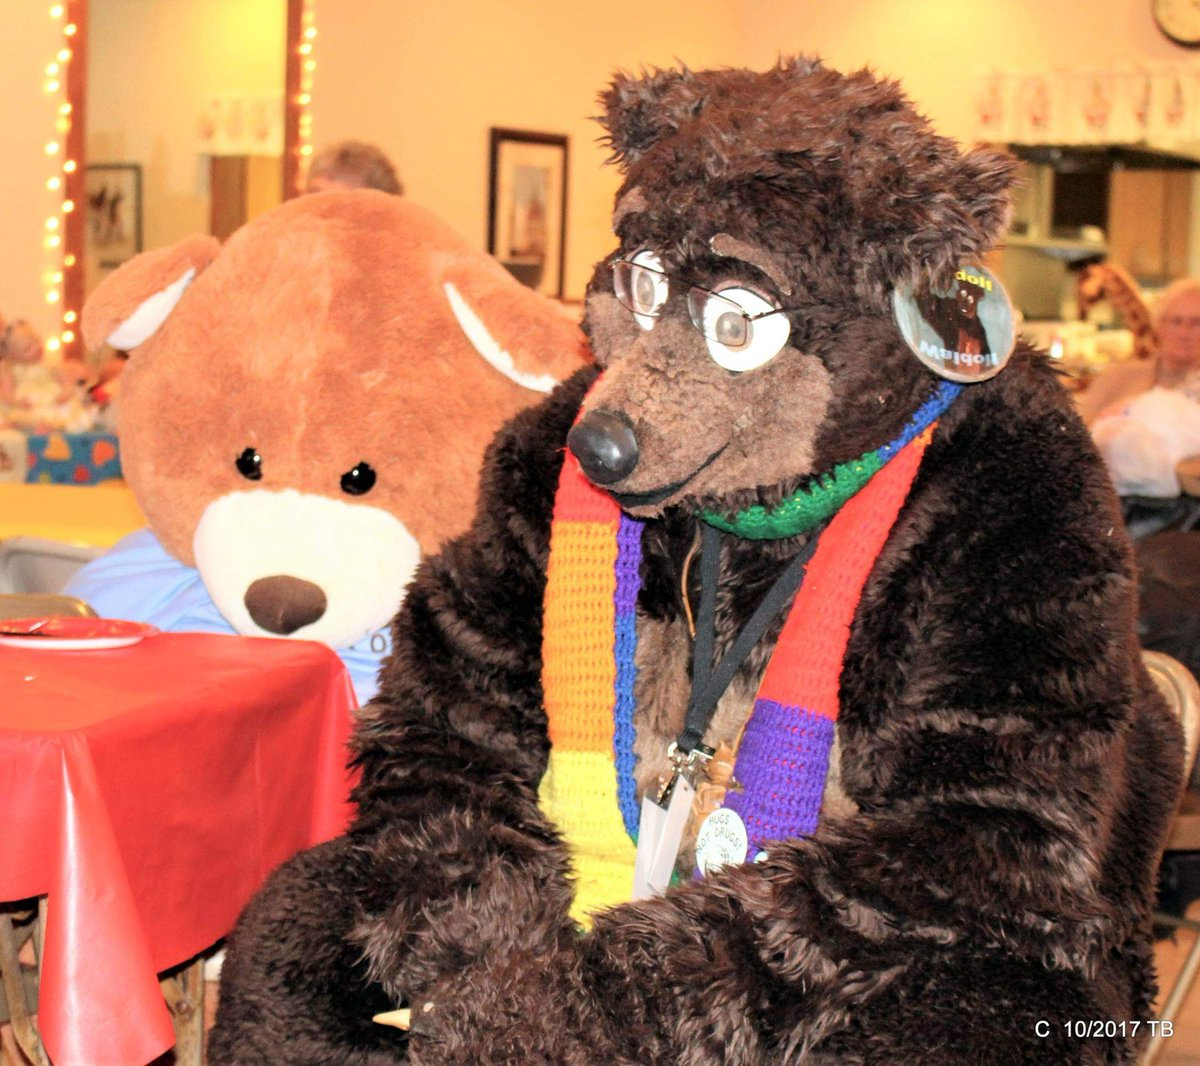 #FursuitFriday #fursuiteveryday Waldolf watching a slide show about teddy bear collecting with a very large #teddybear behind him at the 2017 #OctoBEARfest in #Toldeo Oh,